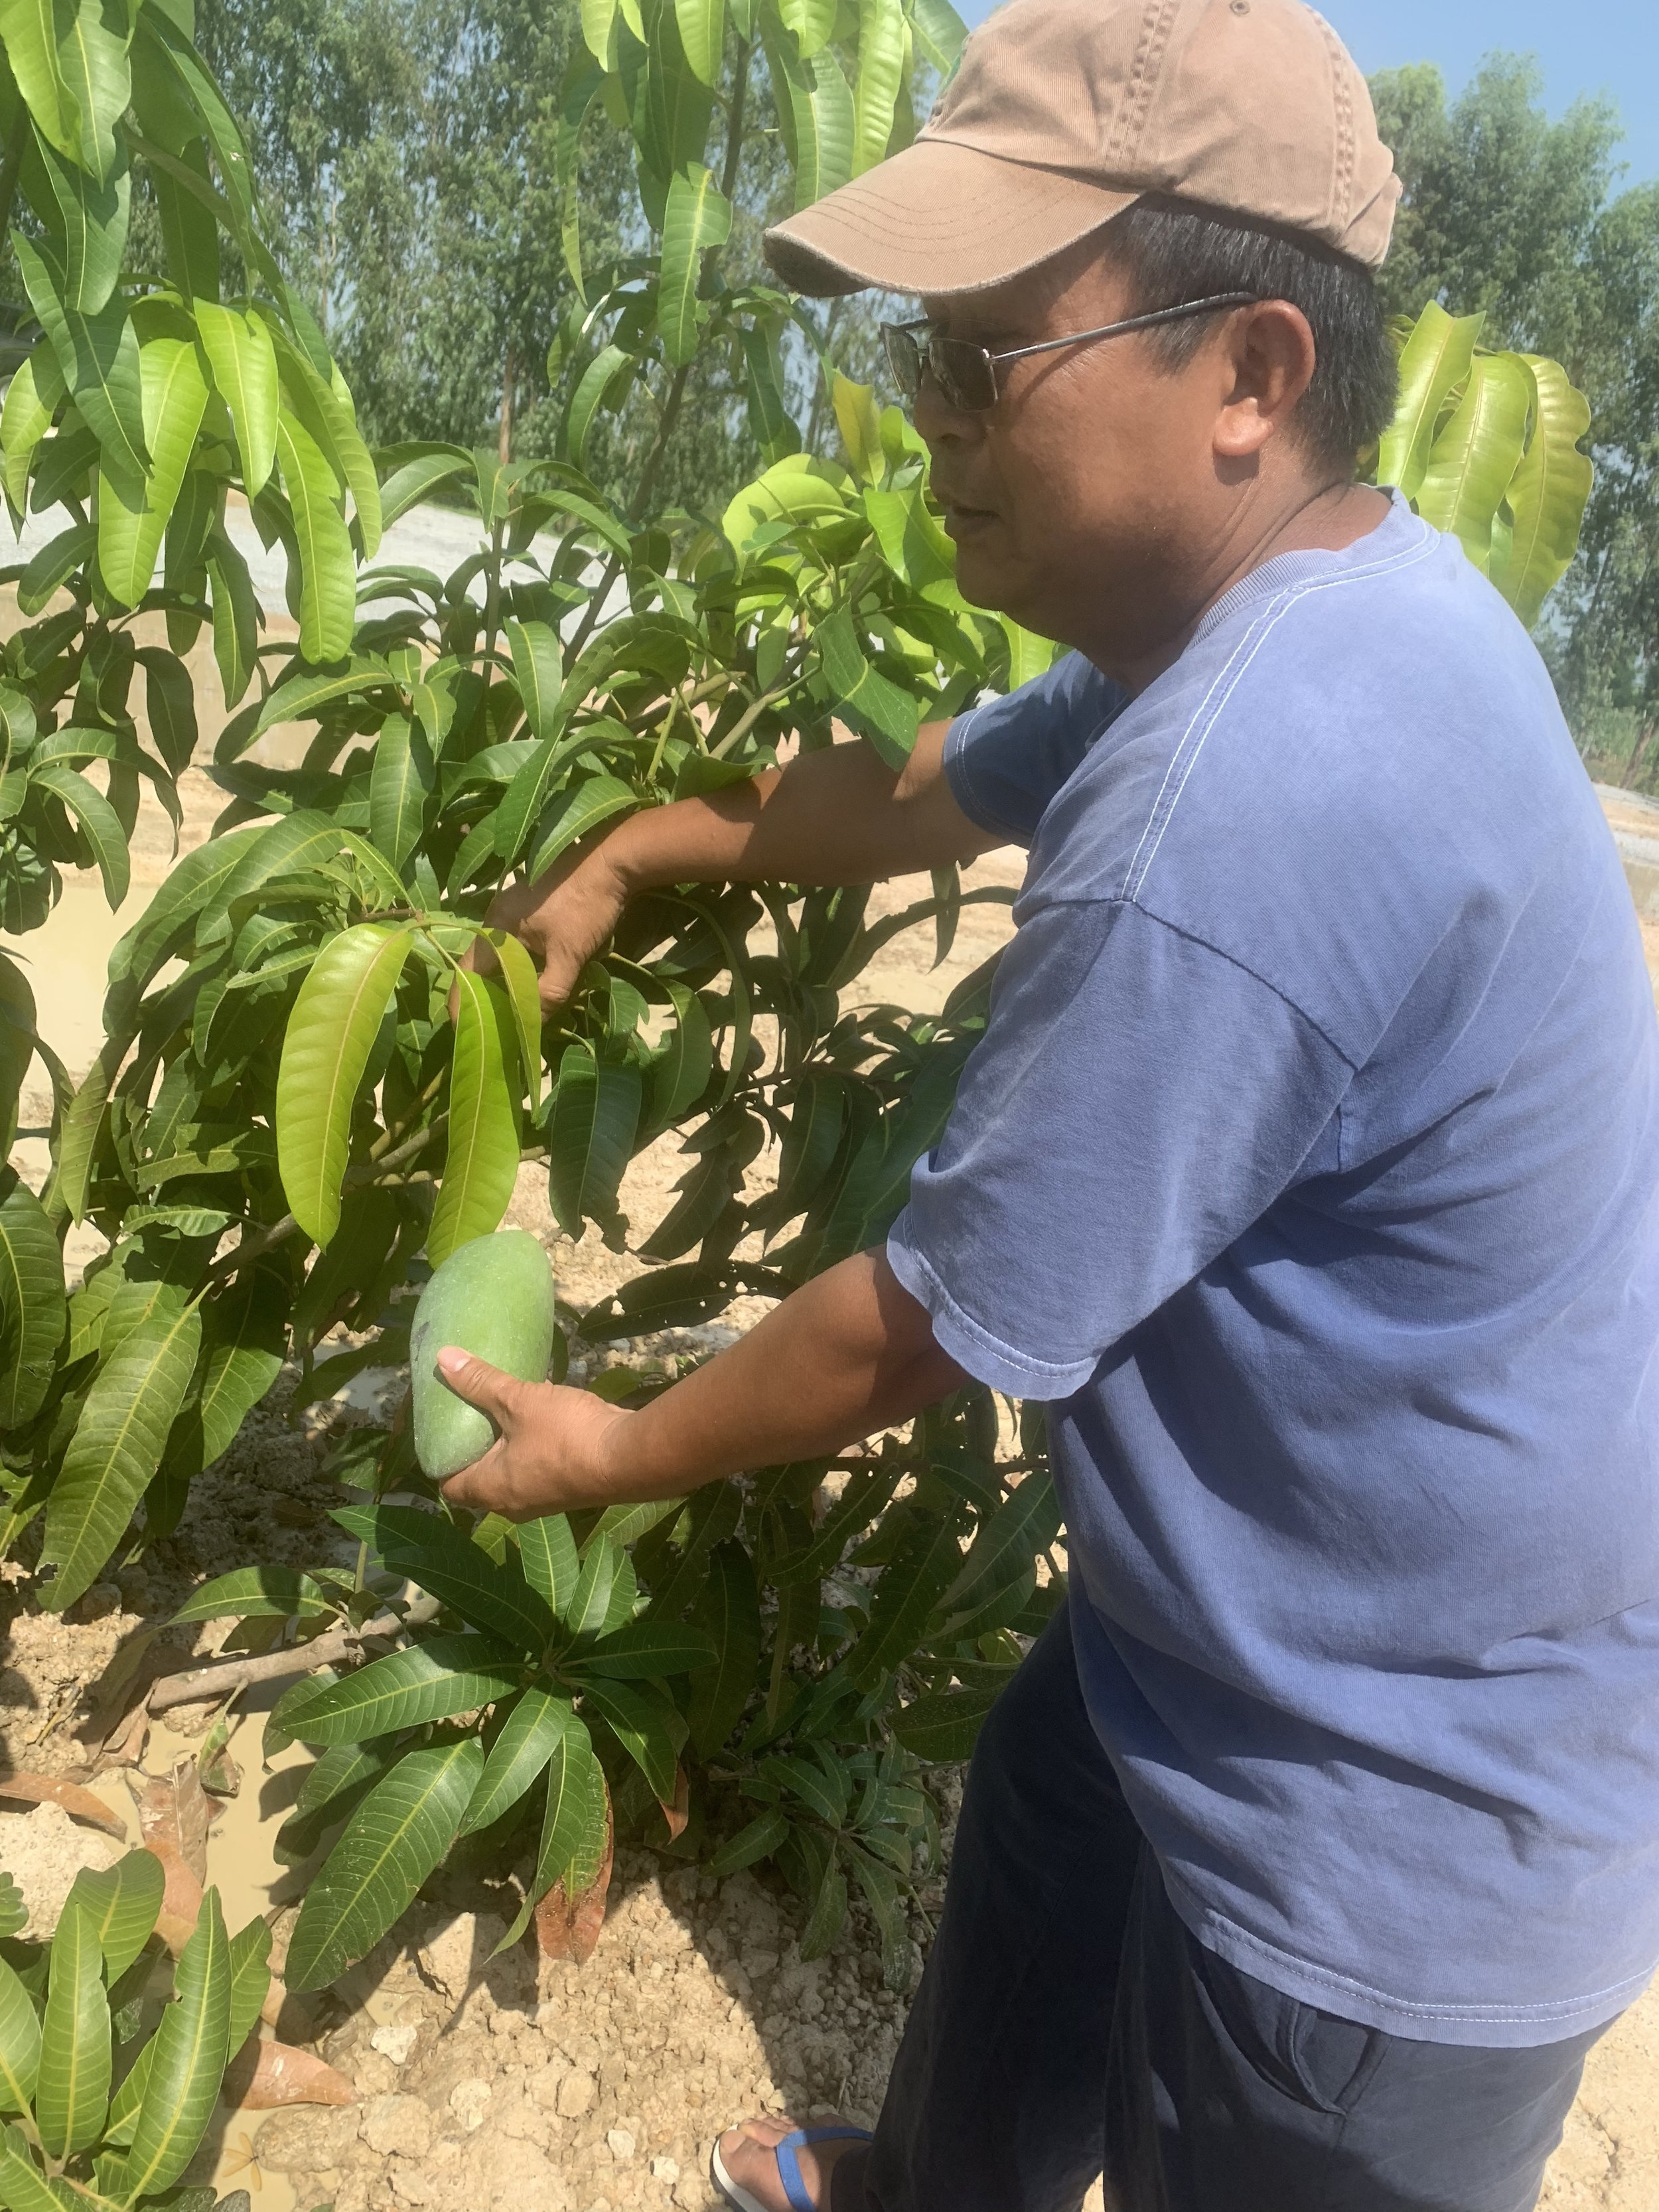 These are the fresh mangos from Khem's mango tree right outside of the church!